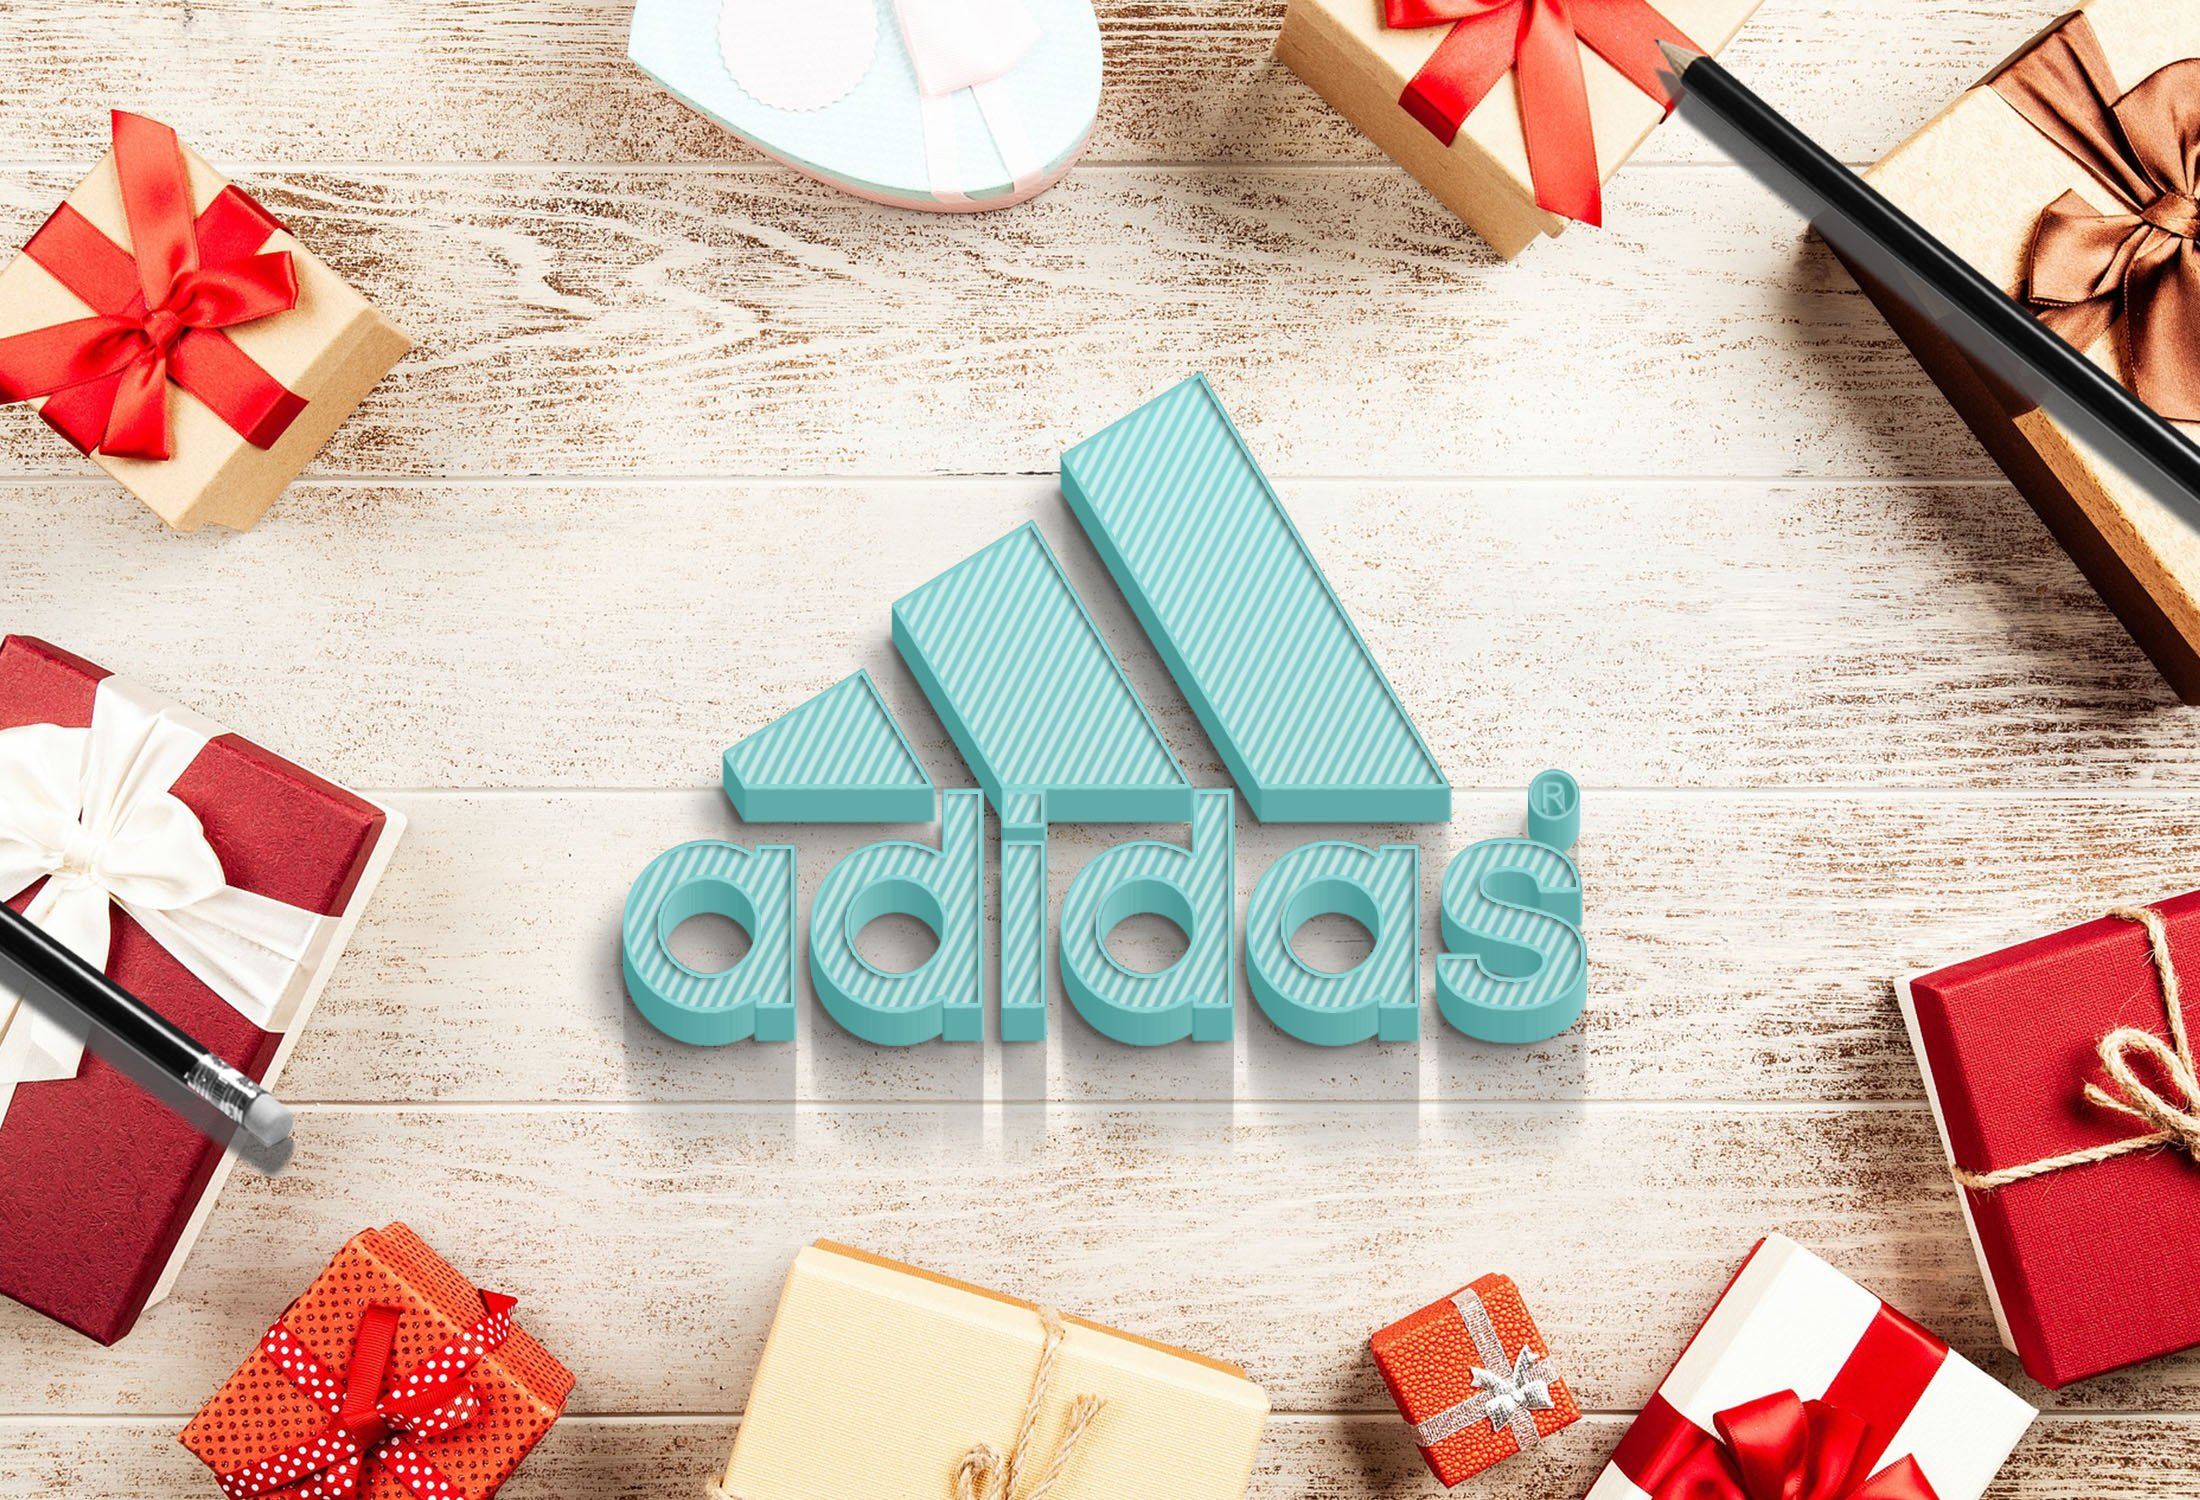 Adidas Logo on colorful wood mockkup